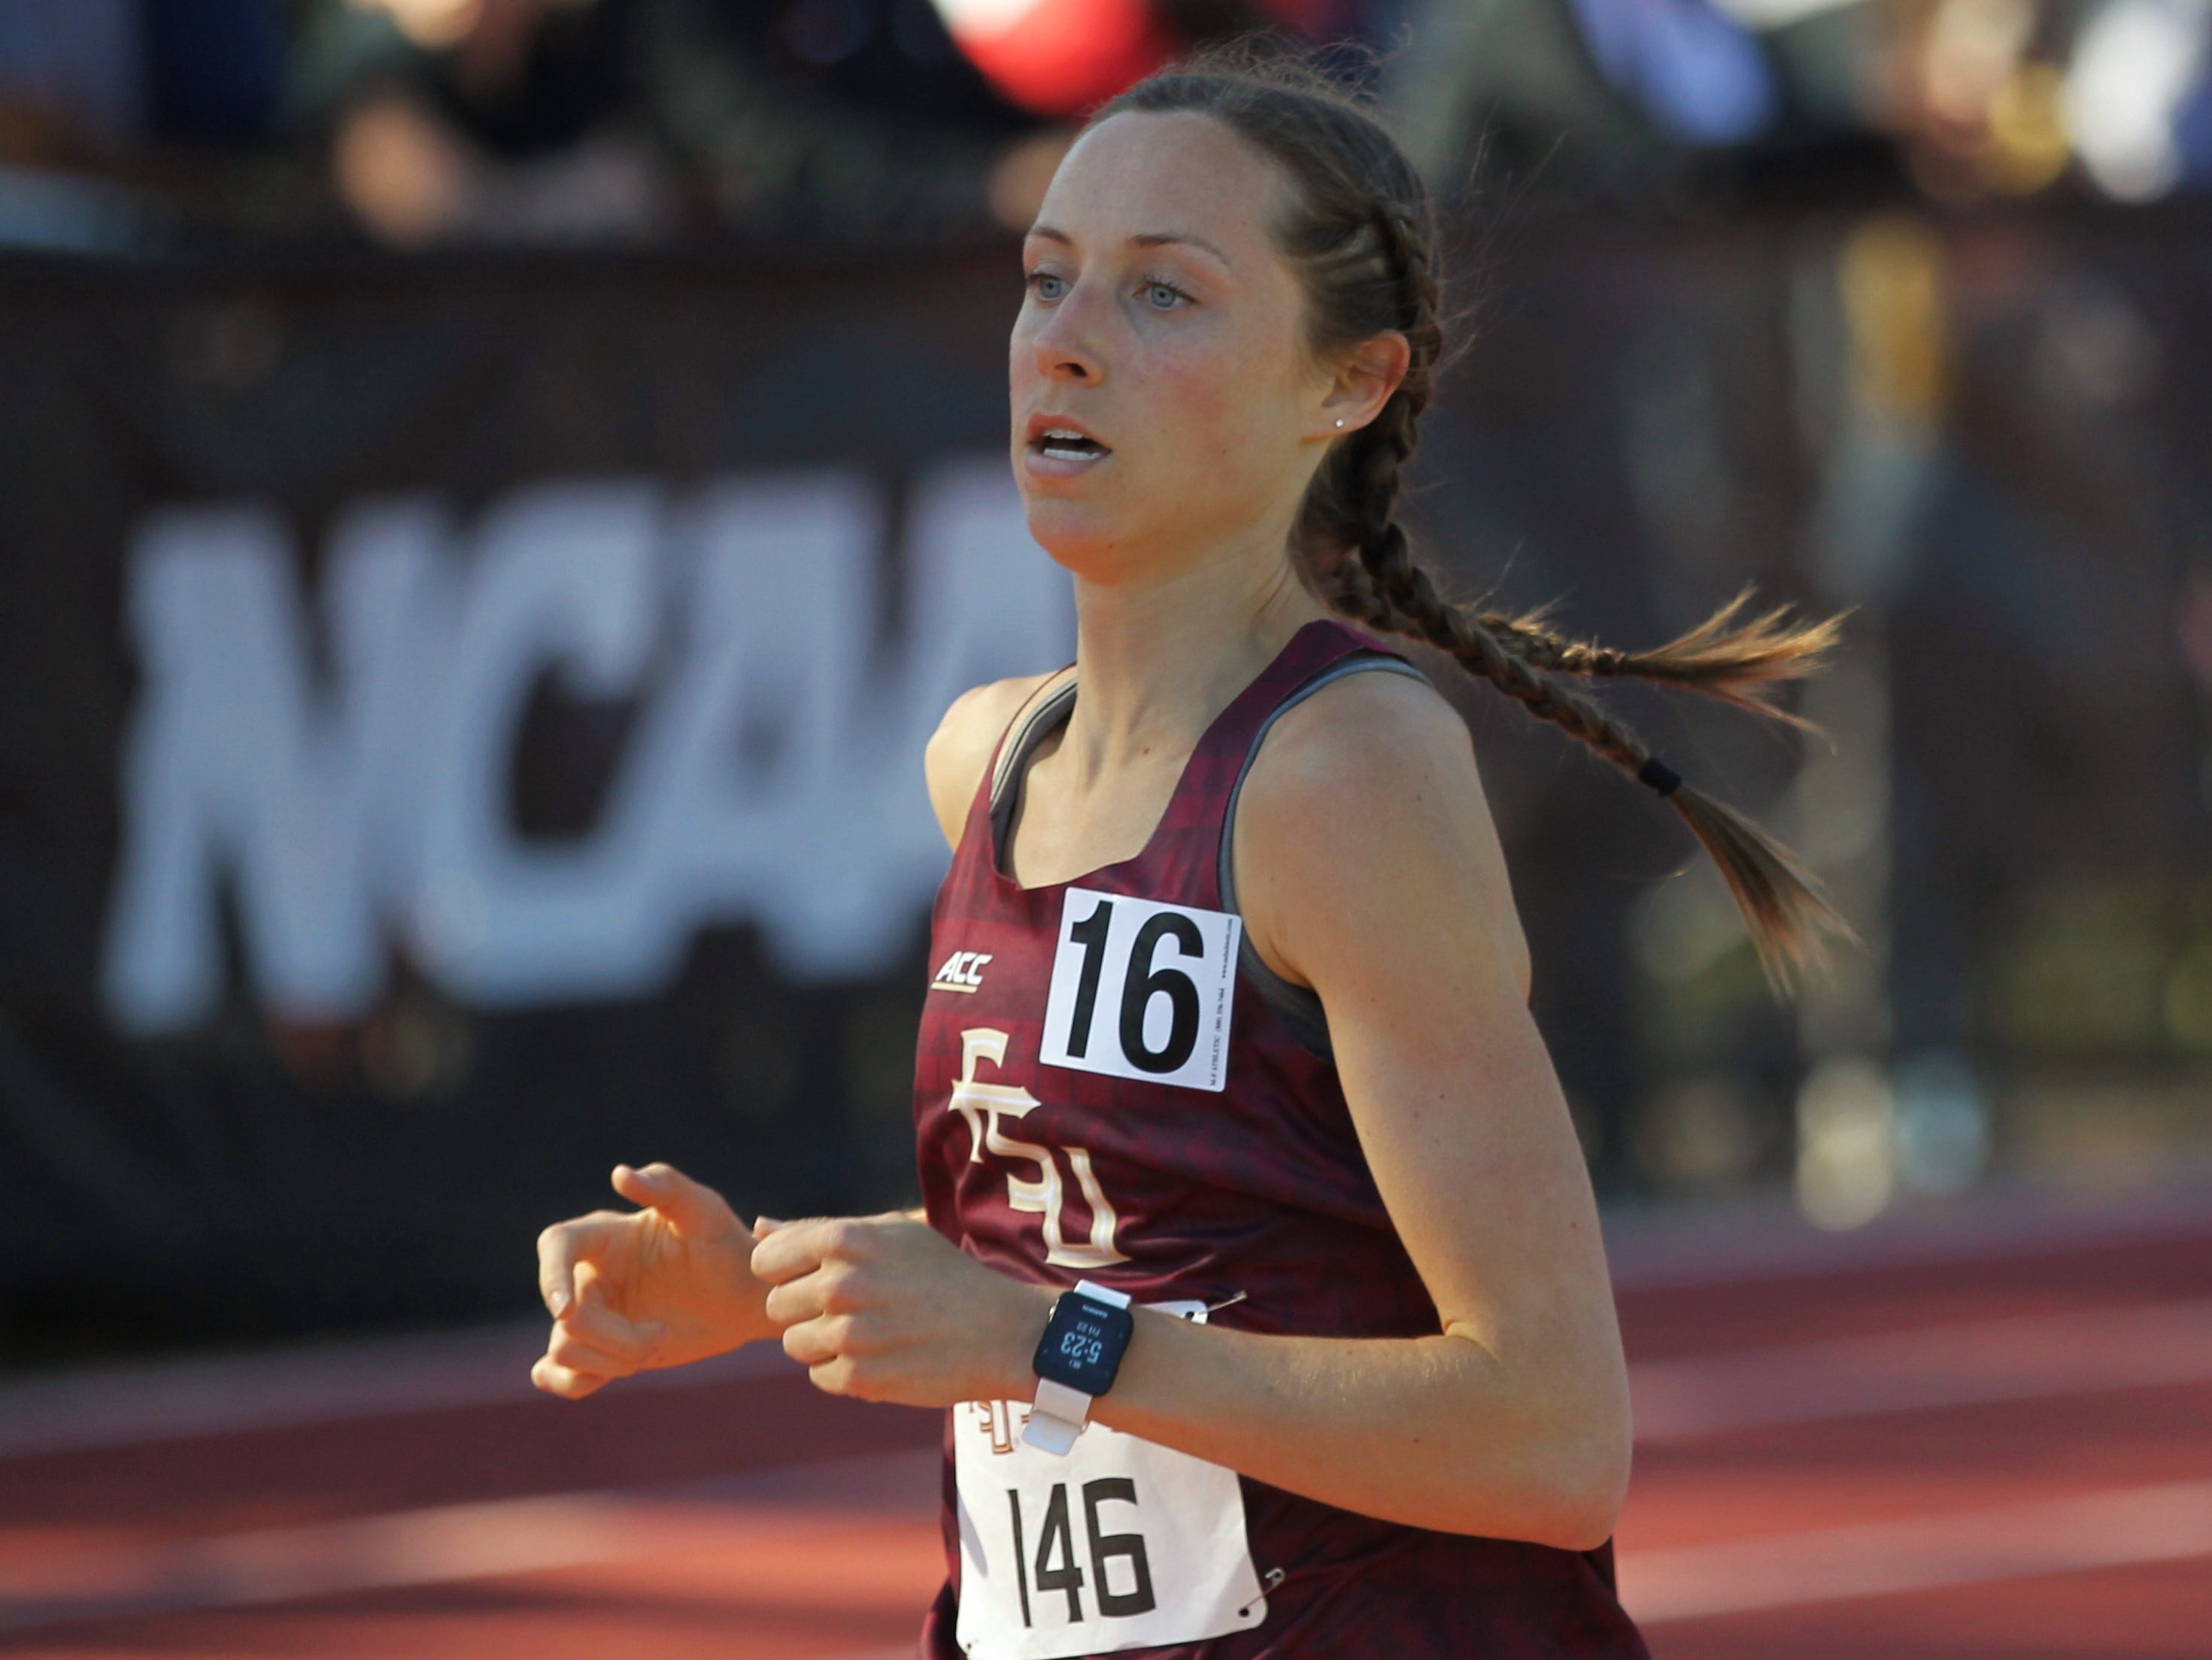 Florida State sophomore Addison Coggins races the 1500-meter run during Friday's college portion of the FSU Relays at Mike Long Track on March 22, 2019.